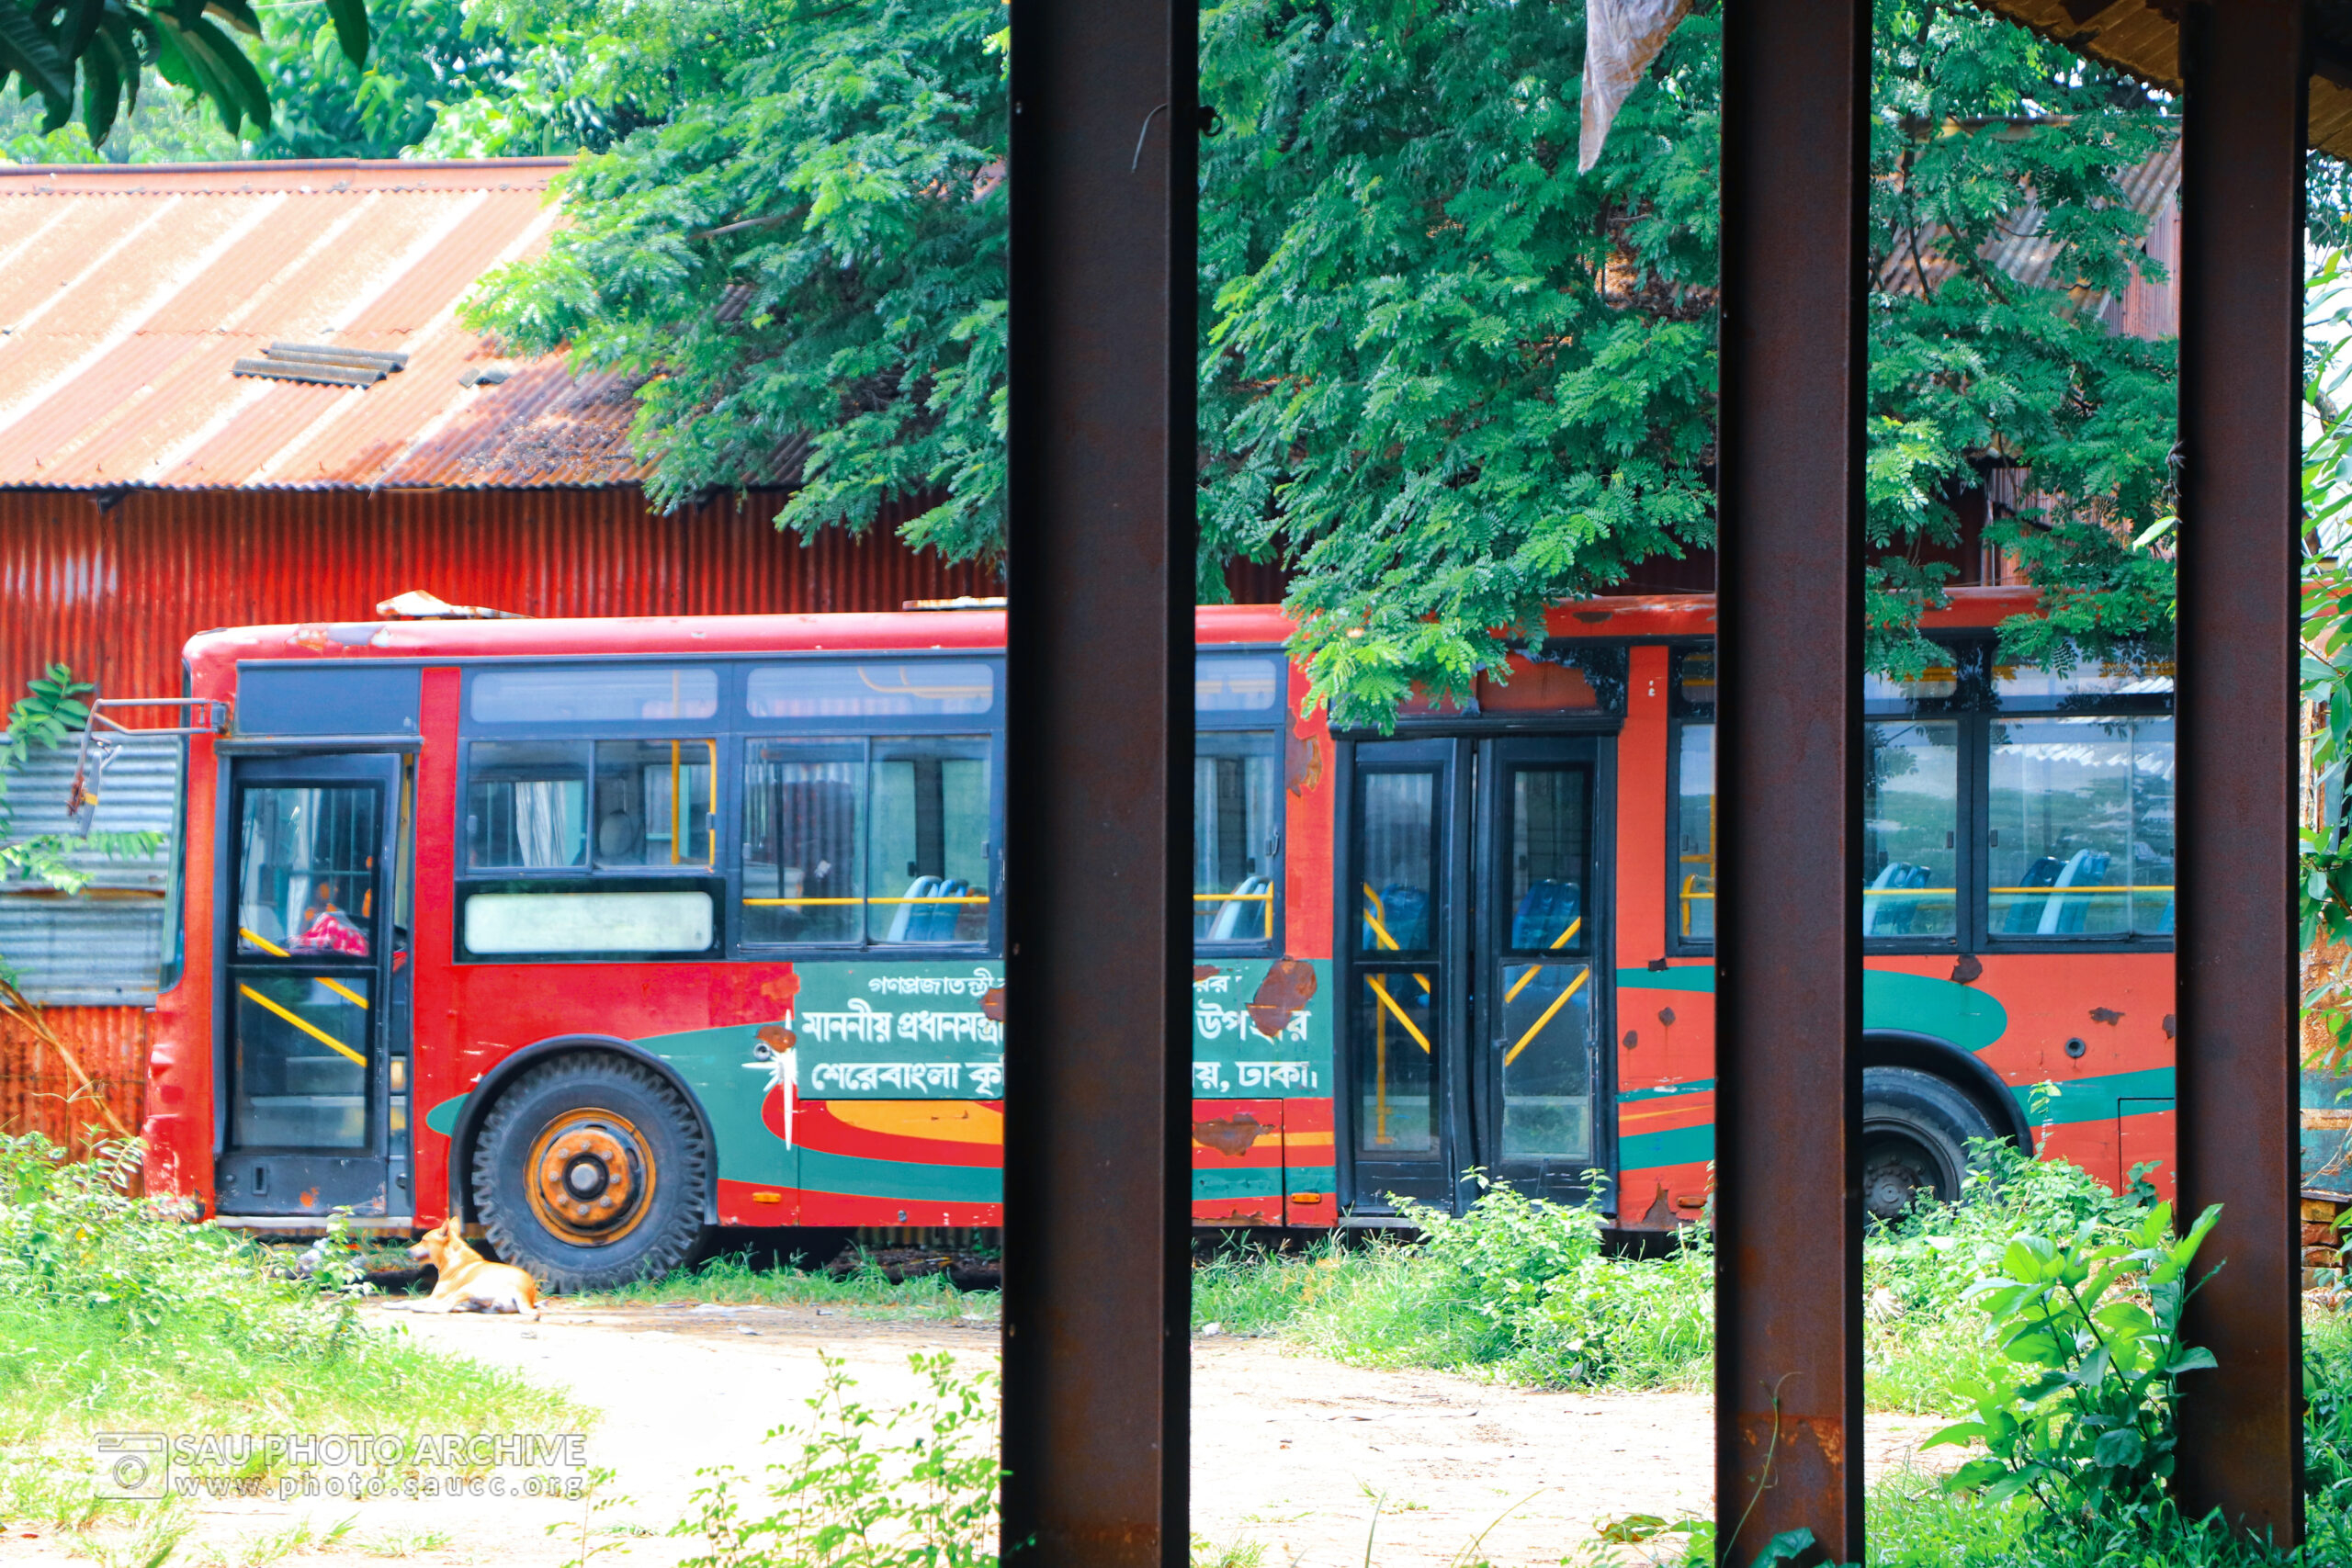 A Scenic photo is captured by Md. Nazmus Sakib Anik at Sher-e-Bangla Agricultural University titled Red Bus of SAU in Garage